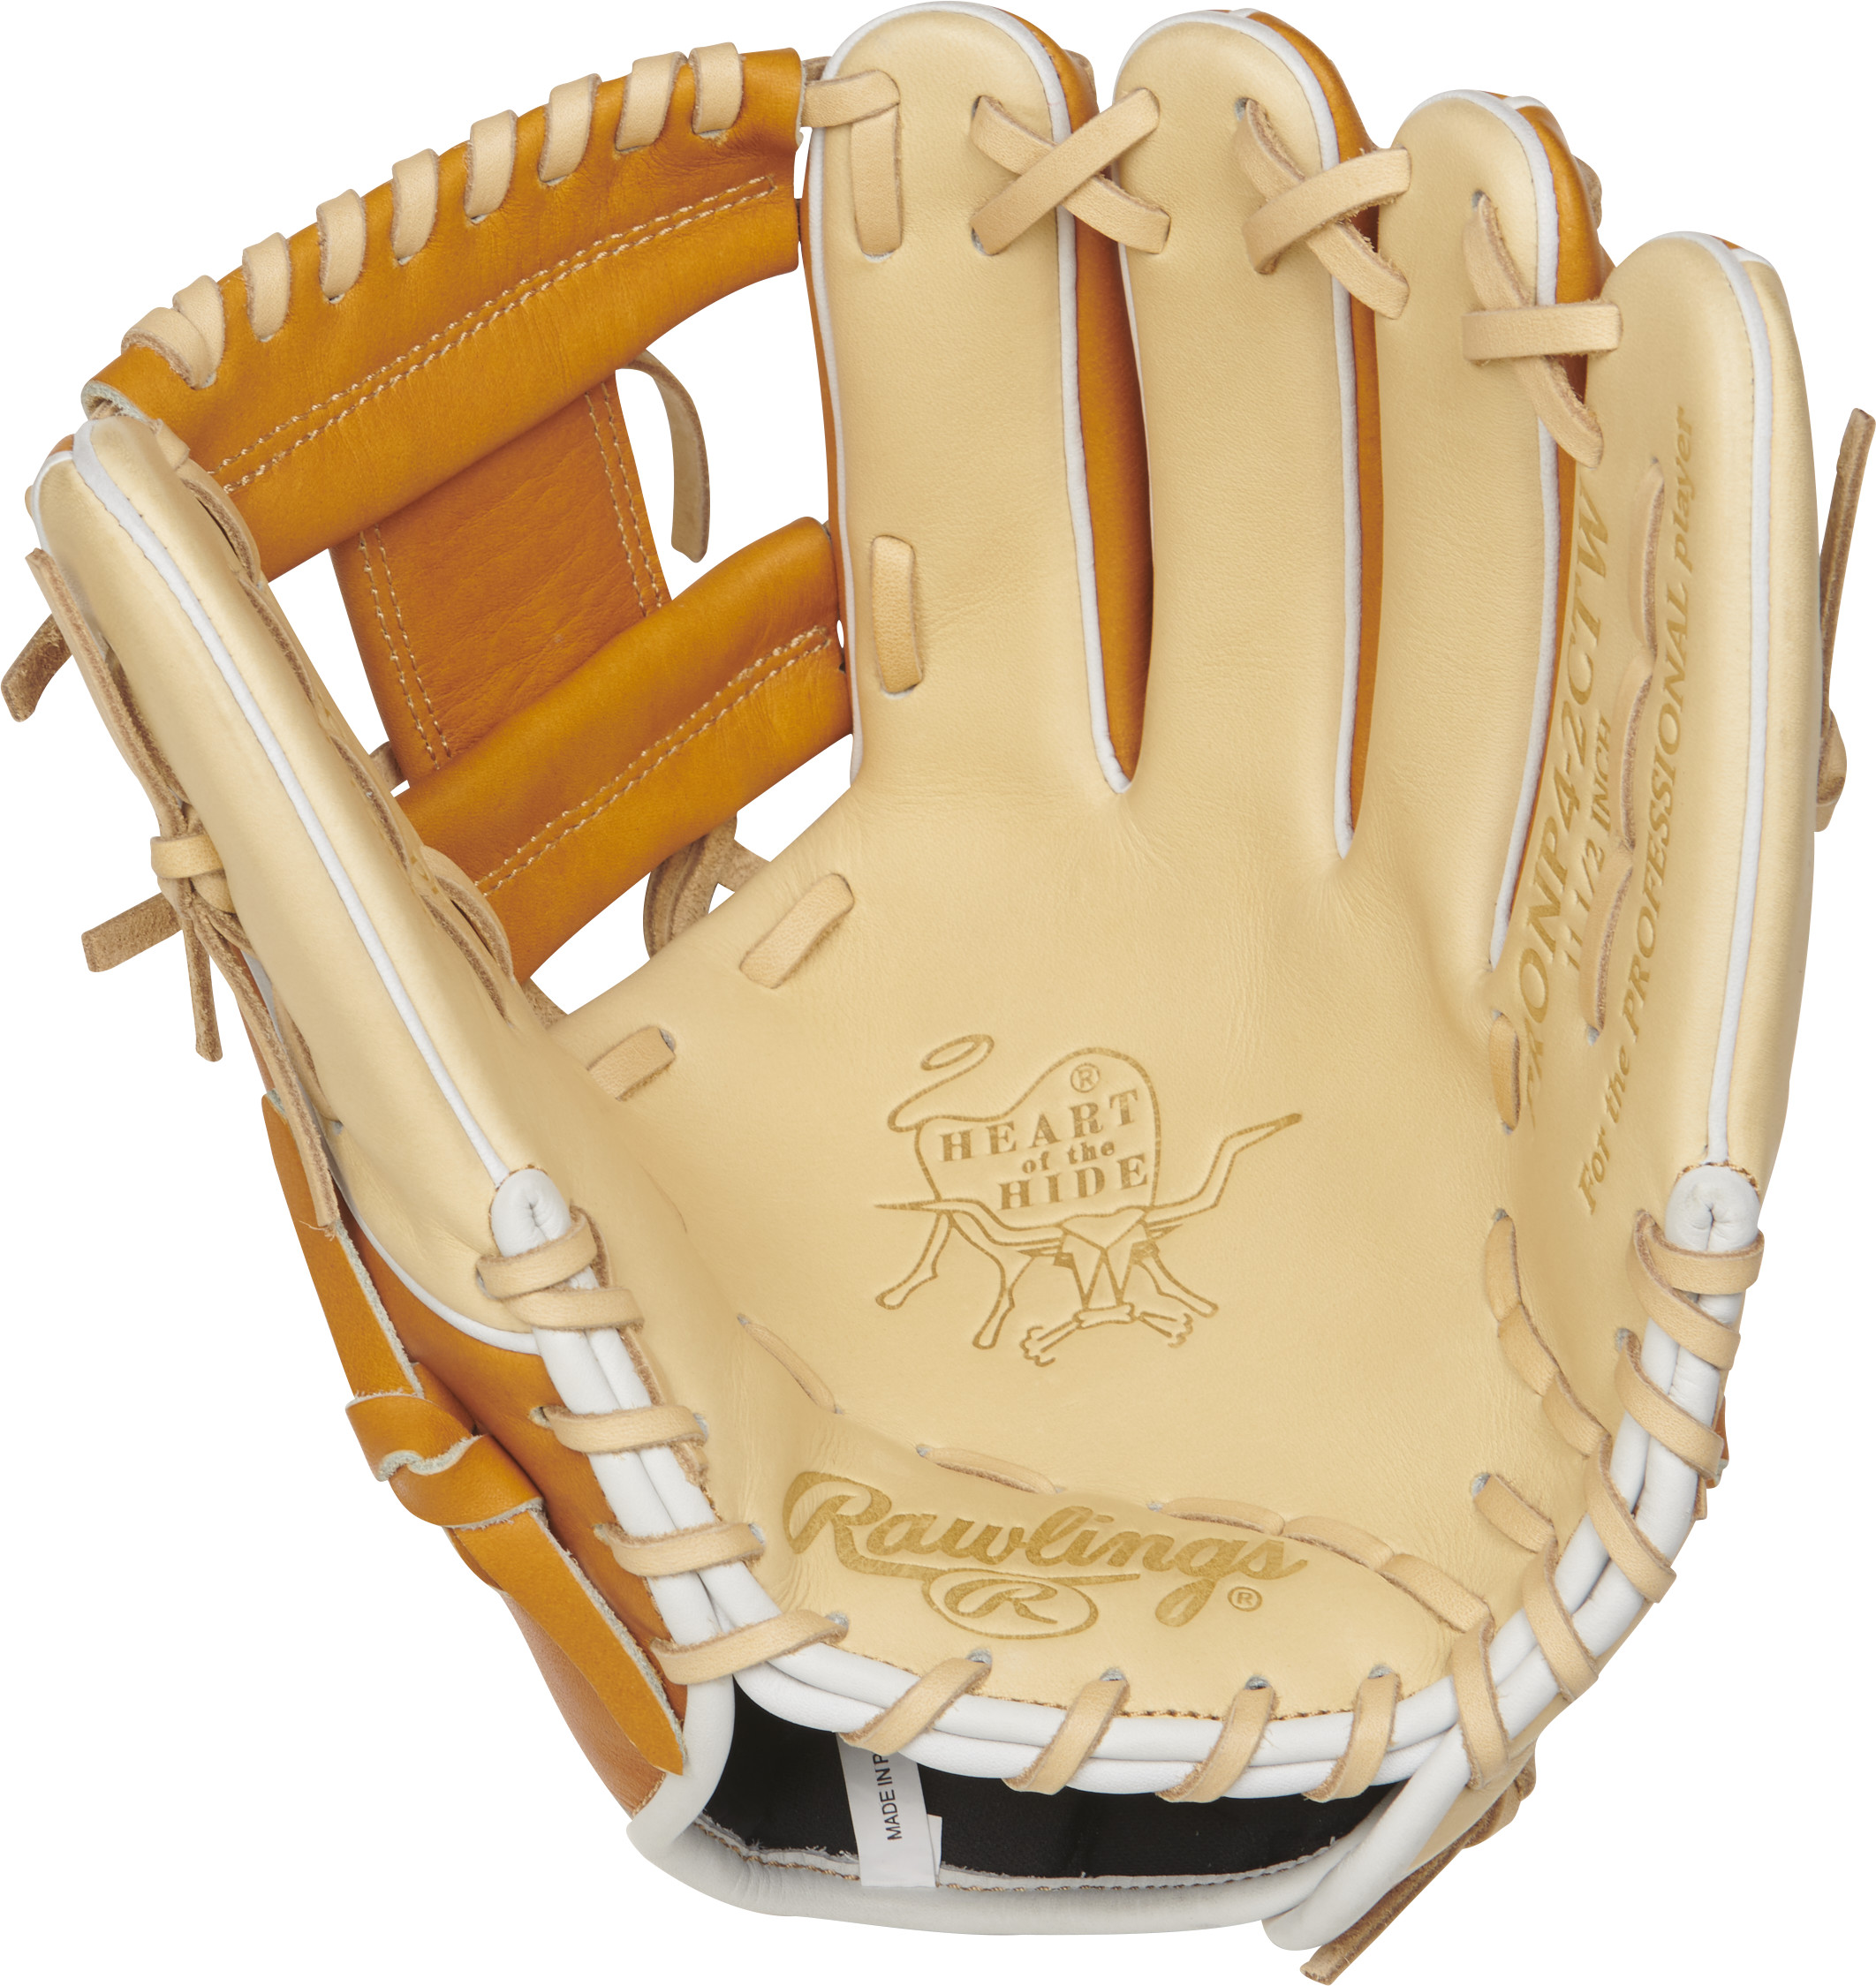 http://www.bestbatdeals.com/images/gloves/rawlings/PRONP4-2CTW-1.jpg